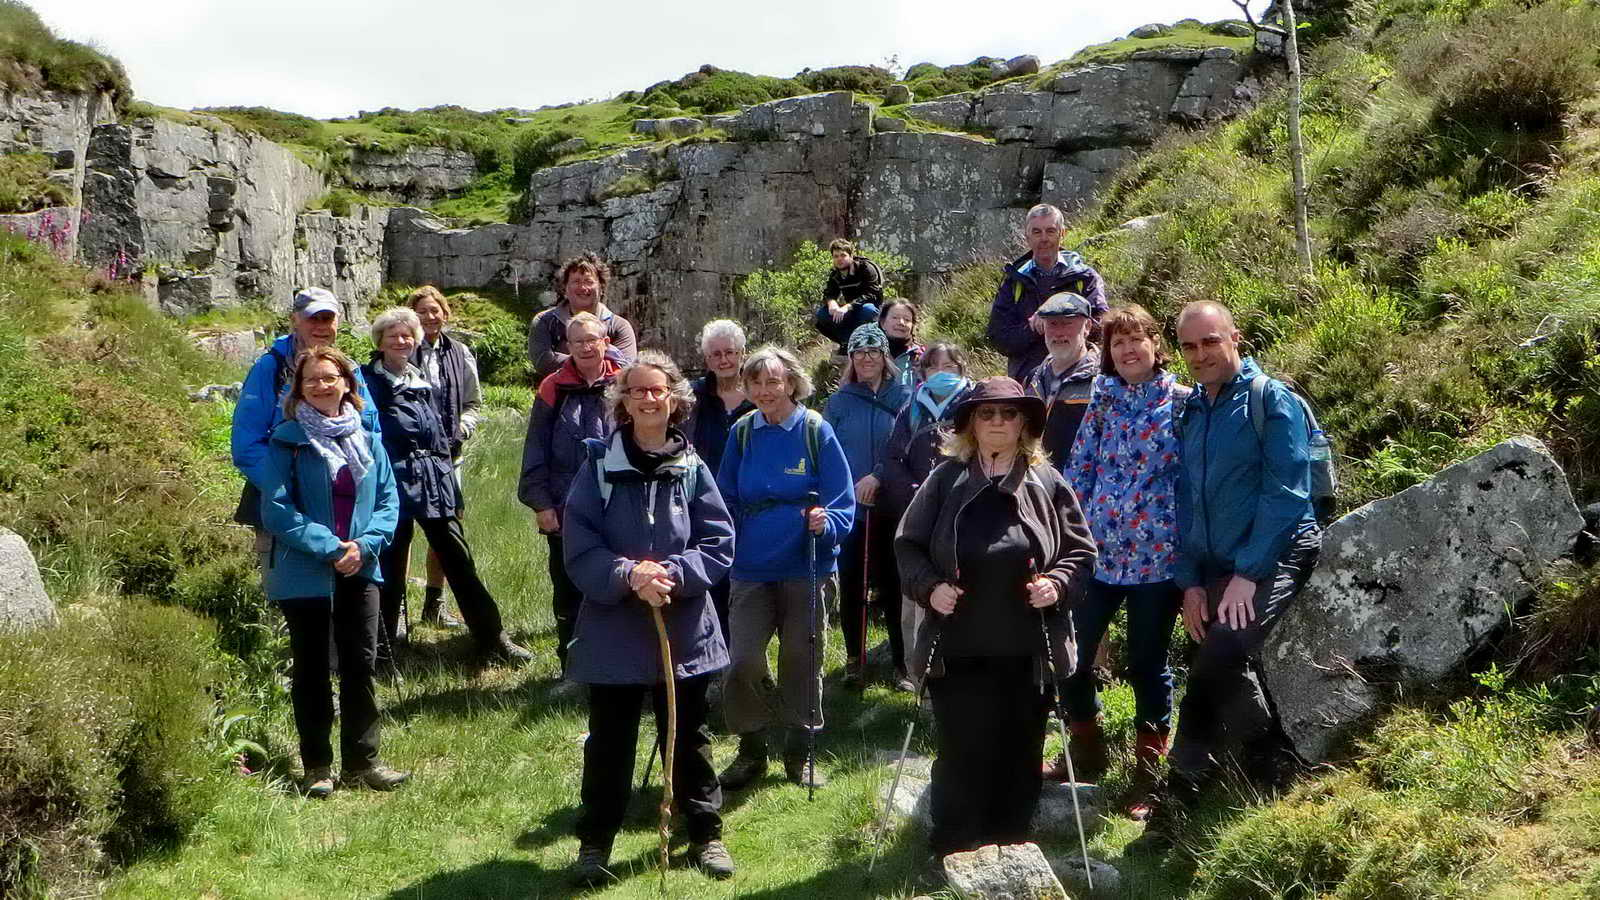 The group inside Rubble Heap Quarry with the rock face as a back drop